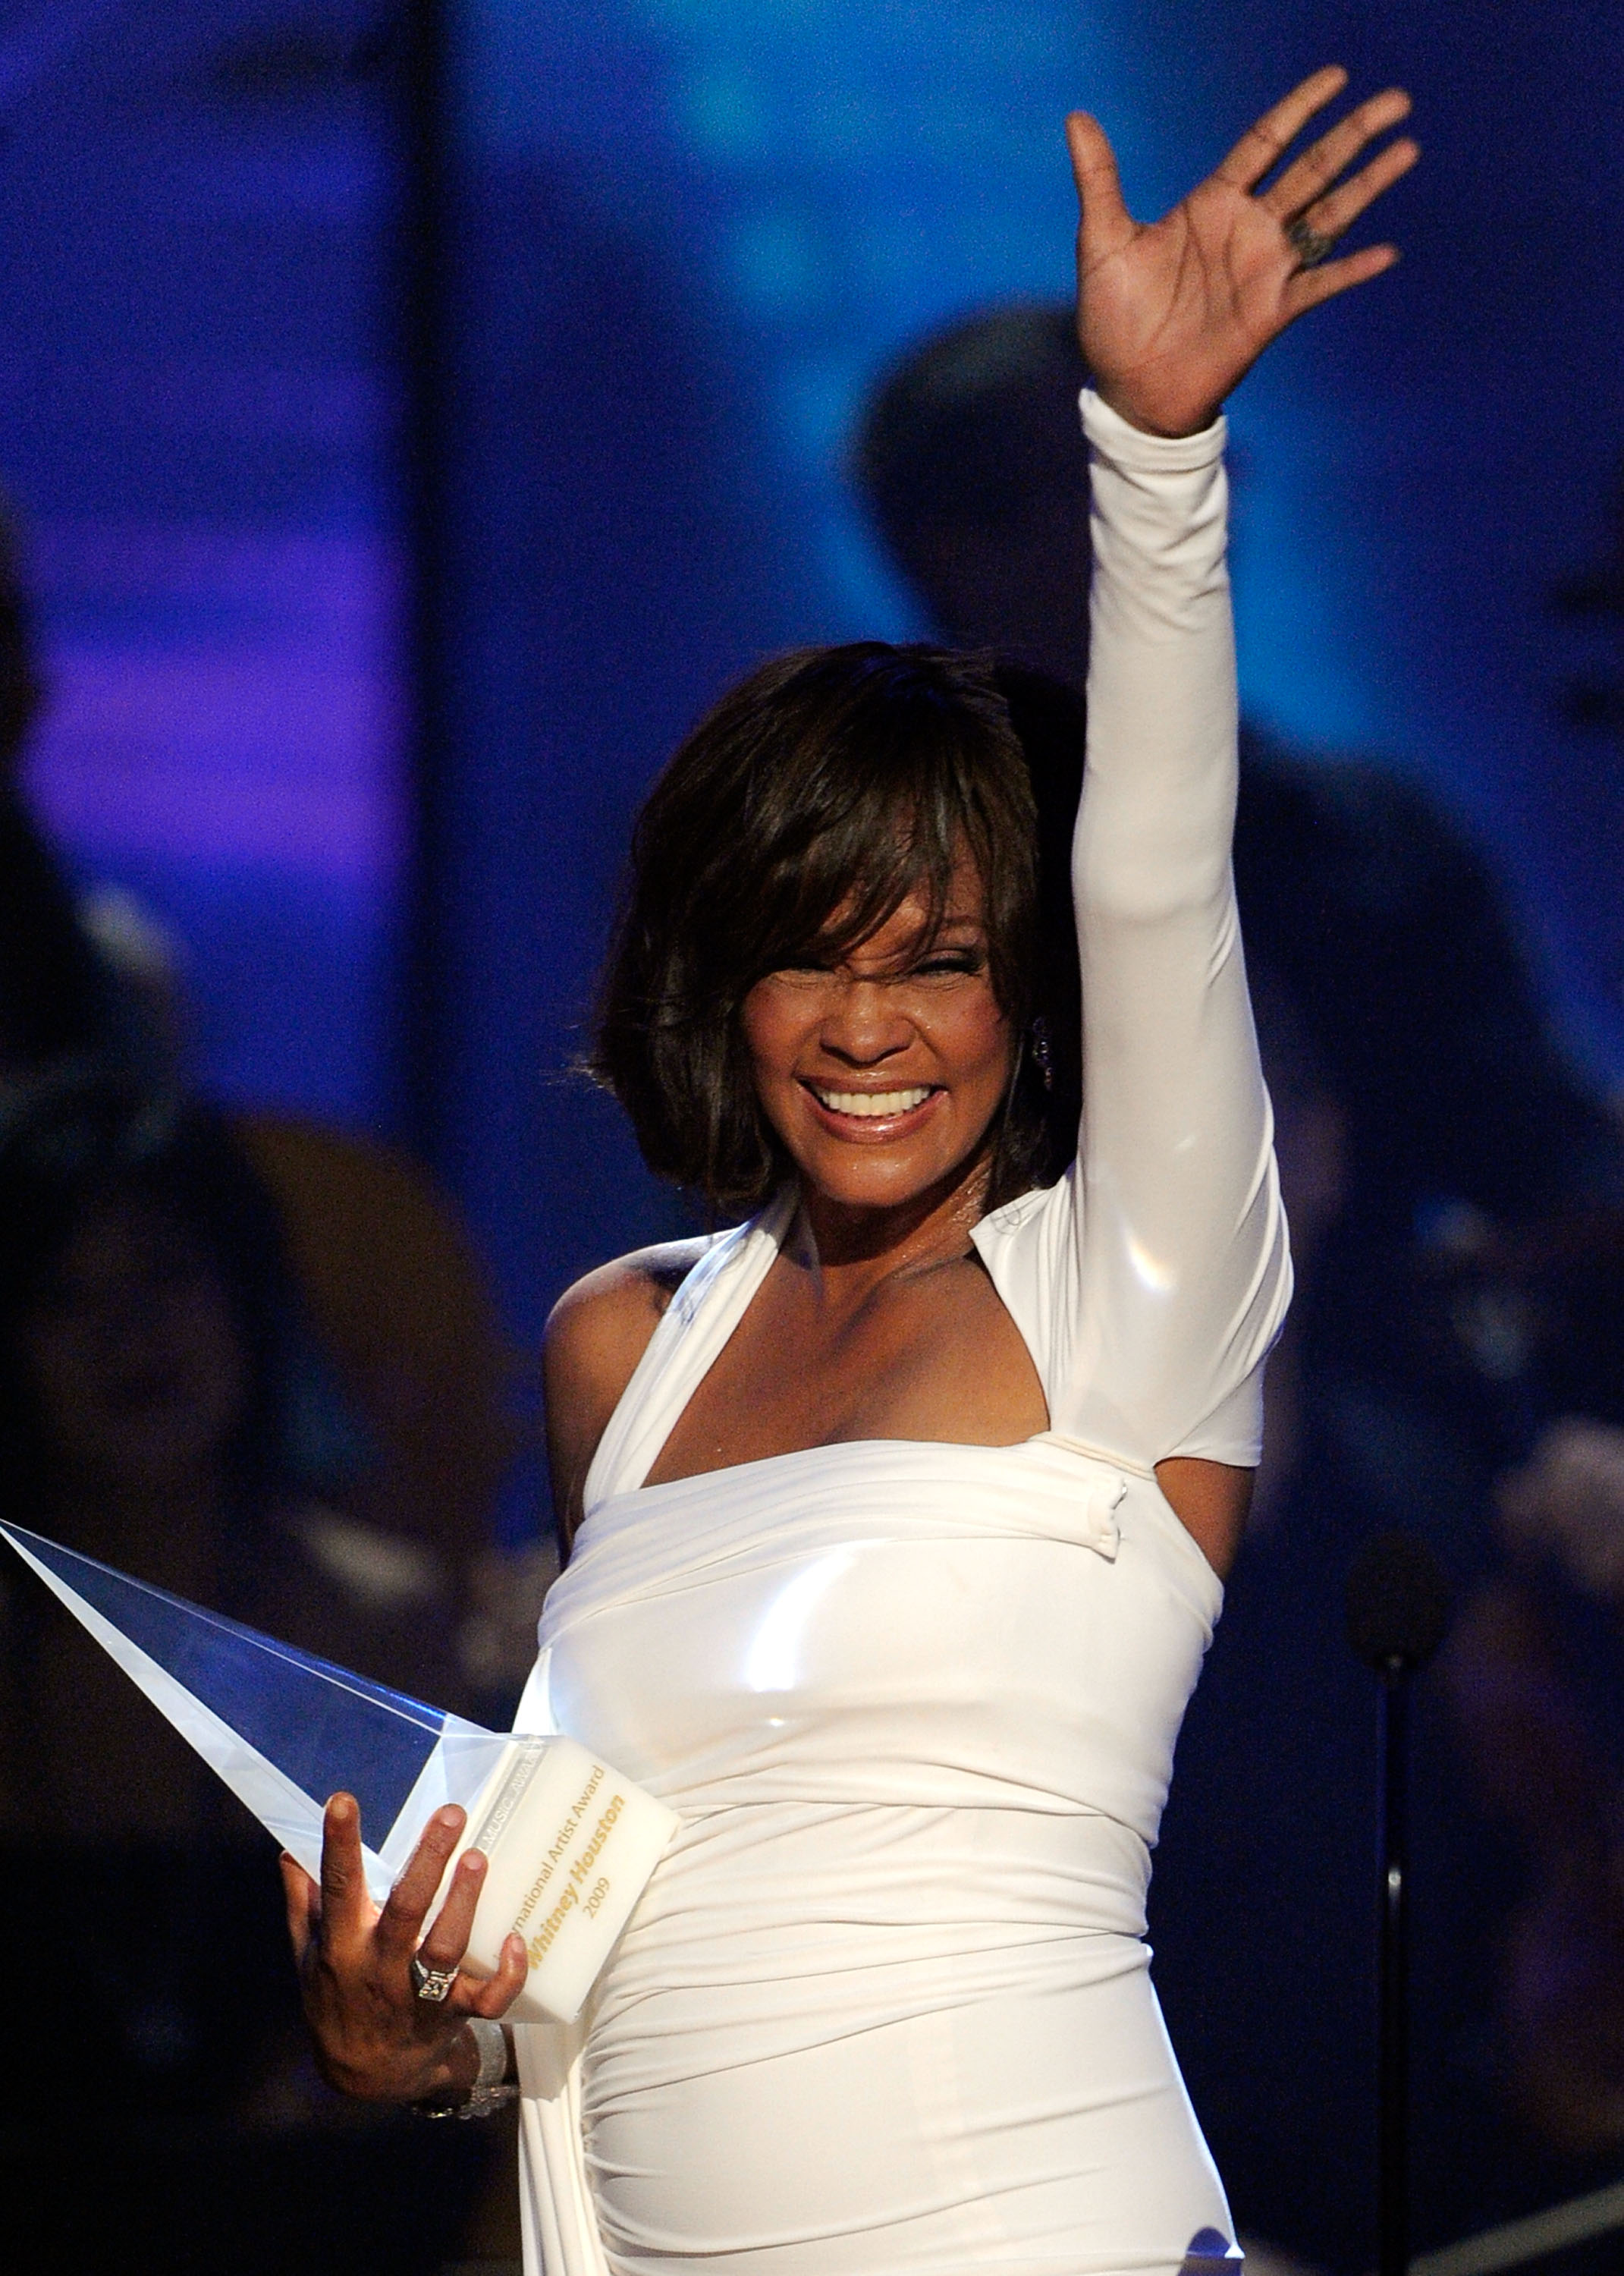 10. Whitney Houston's Miraculous Comeback